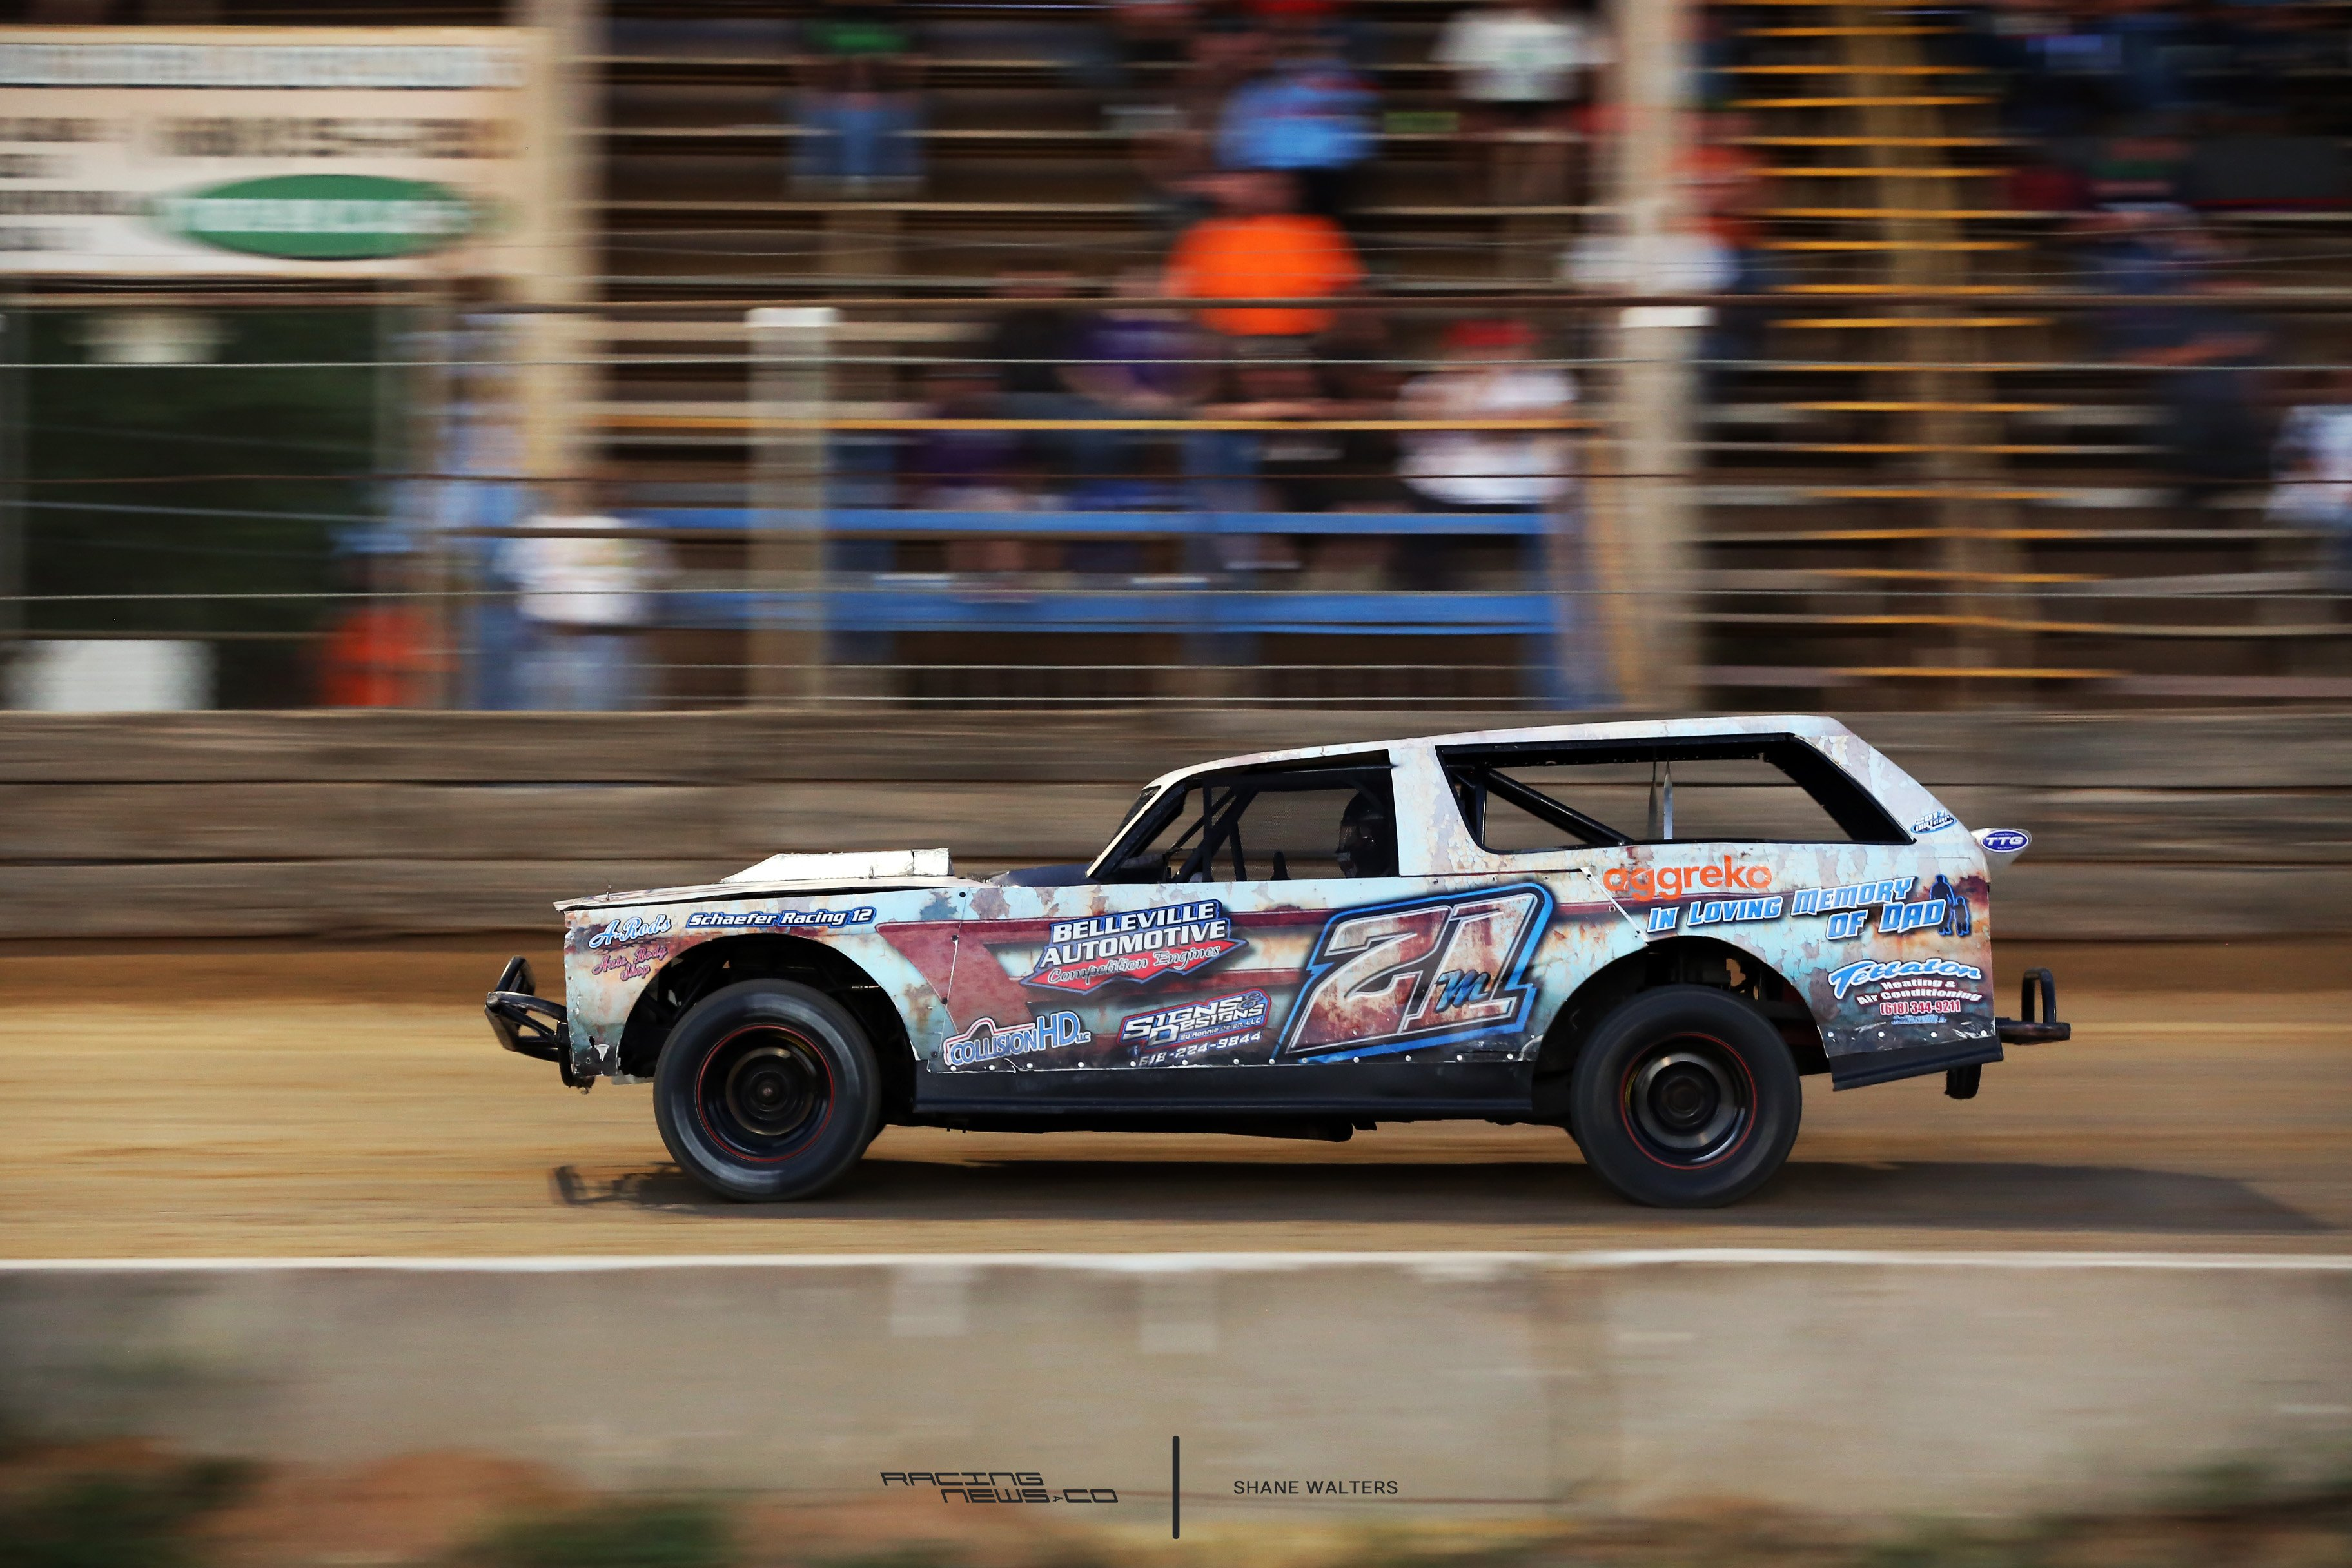 Here's an awesome rustic race car wrap - Racing News